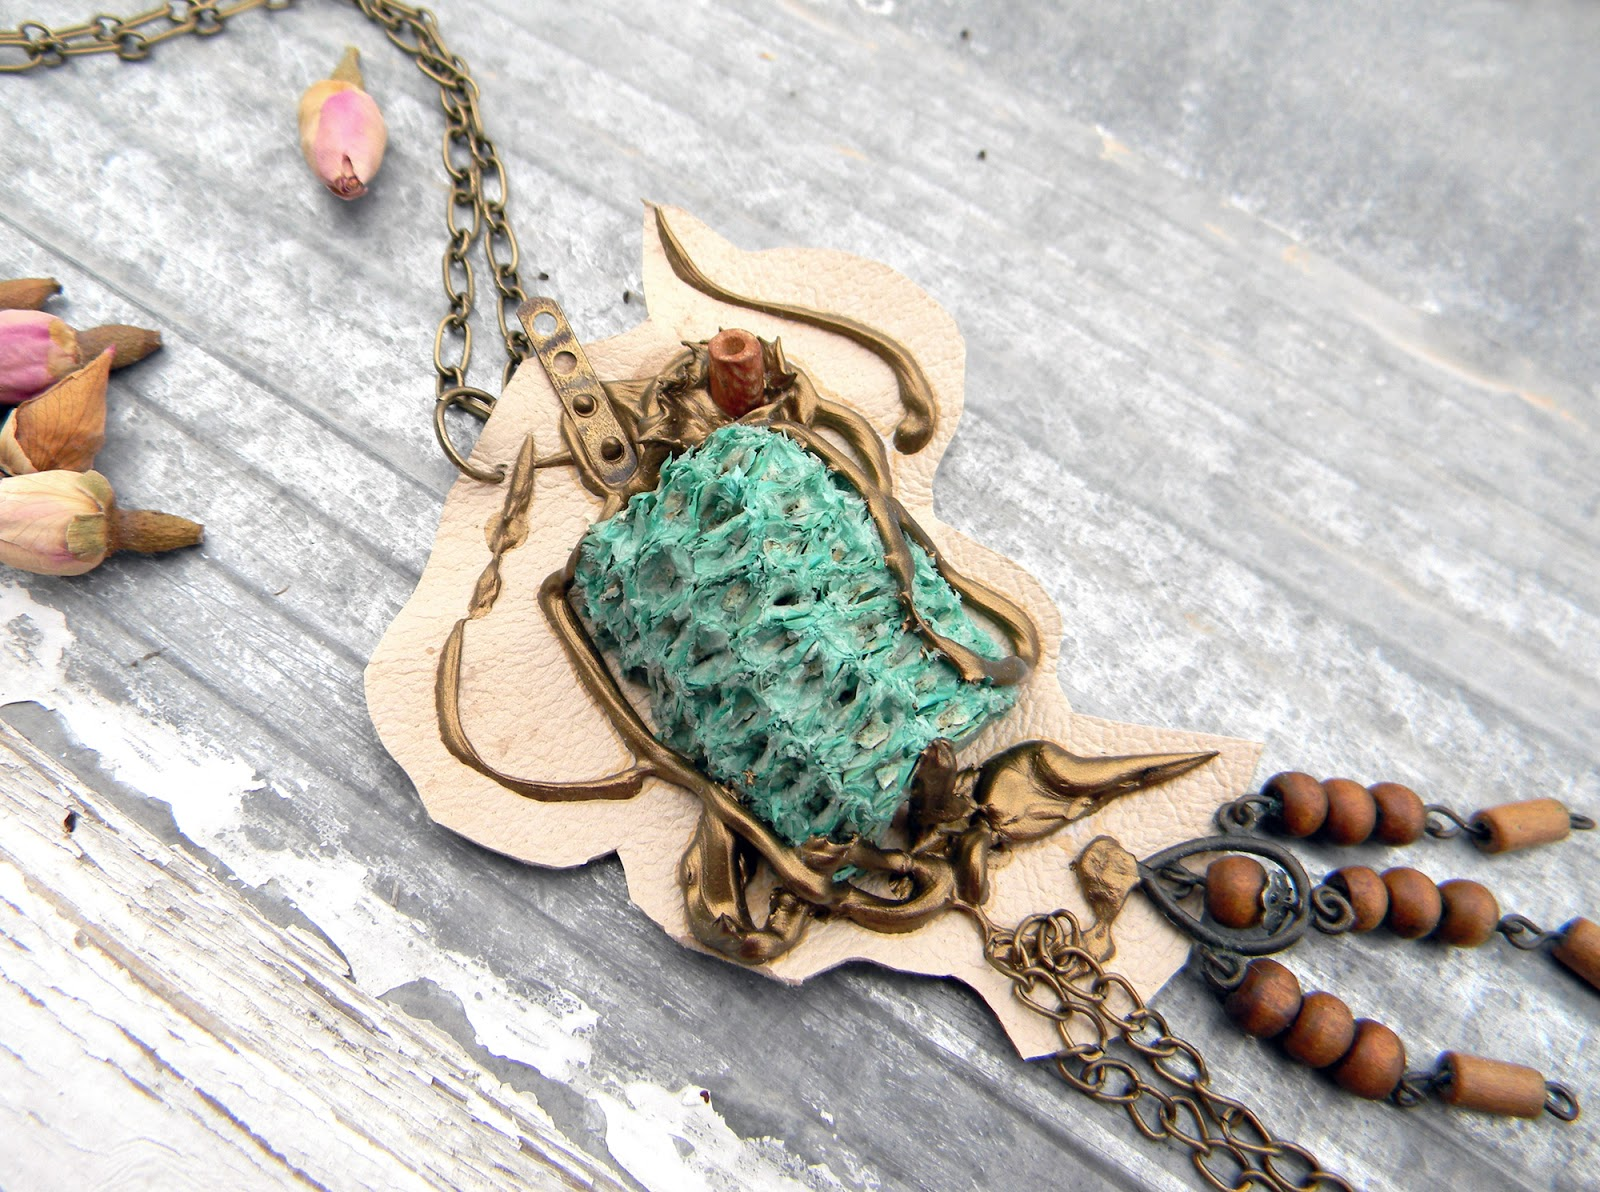 Unique Handmade Necklace Steampunk Eco Chic Jewelry Fashion Handcrafted Jewelry